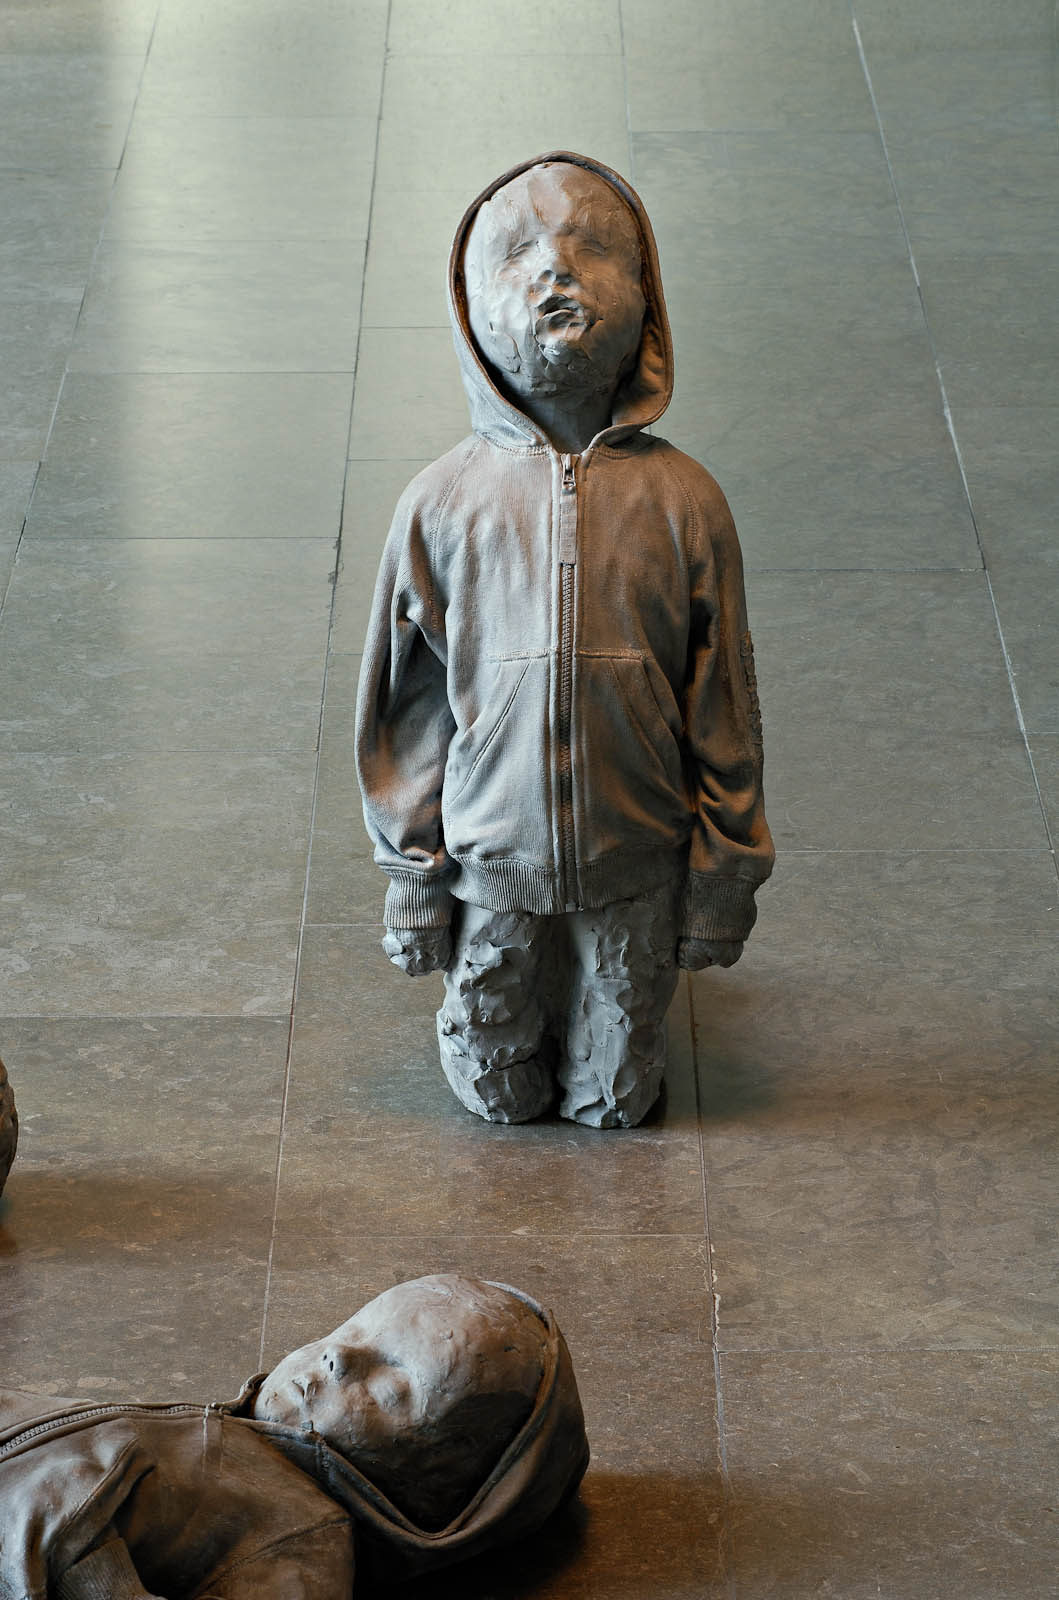 A child wearing a hood, on is knees looking upwards.